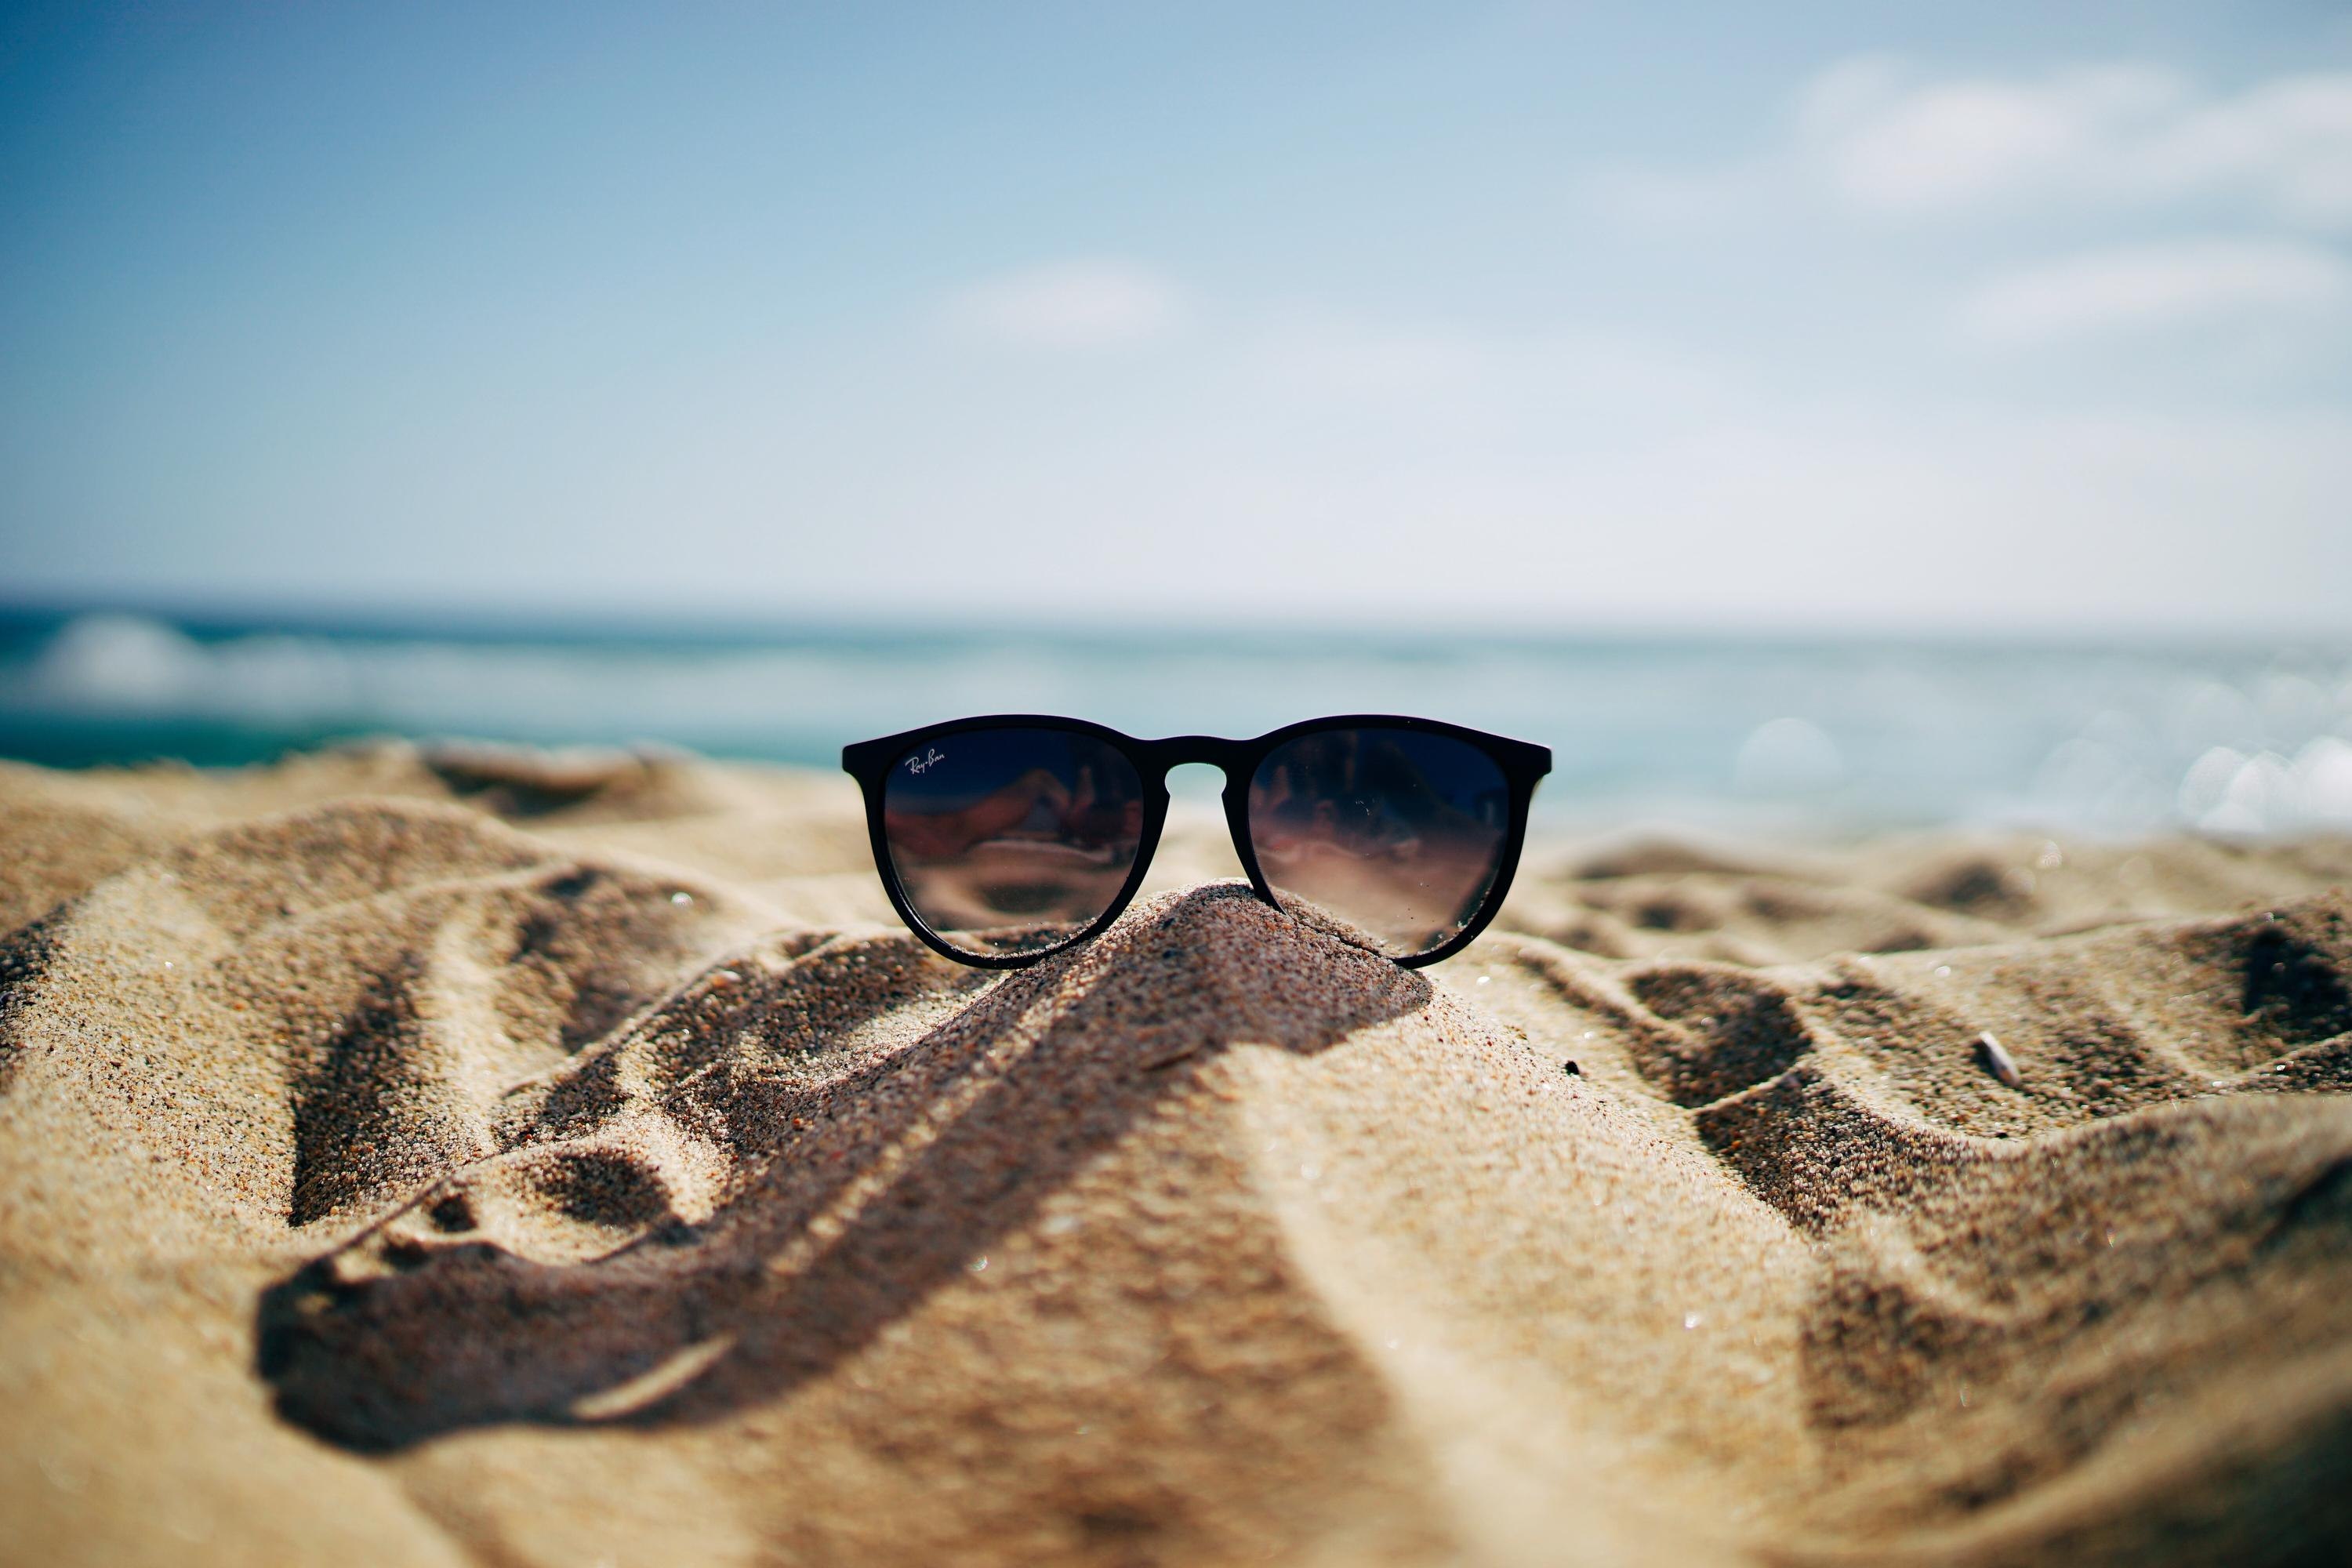 Sun glasses in sand